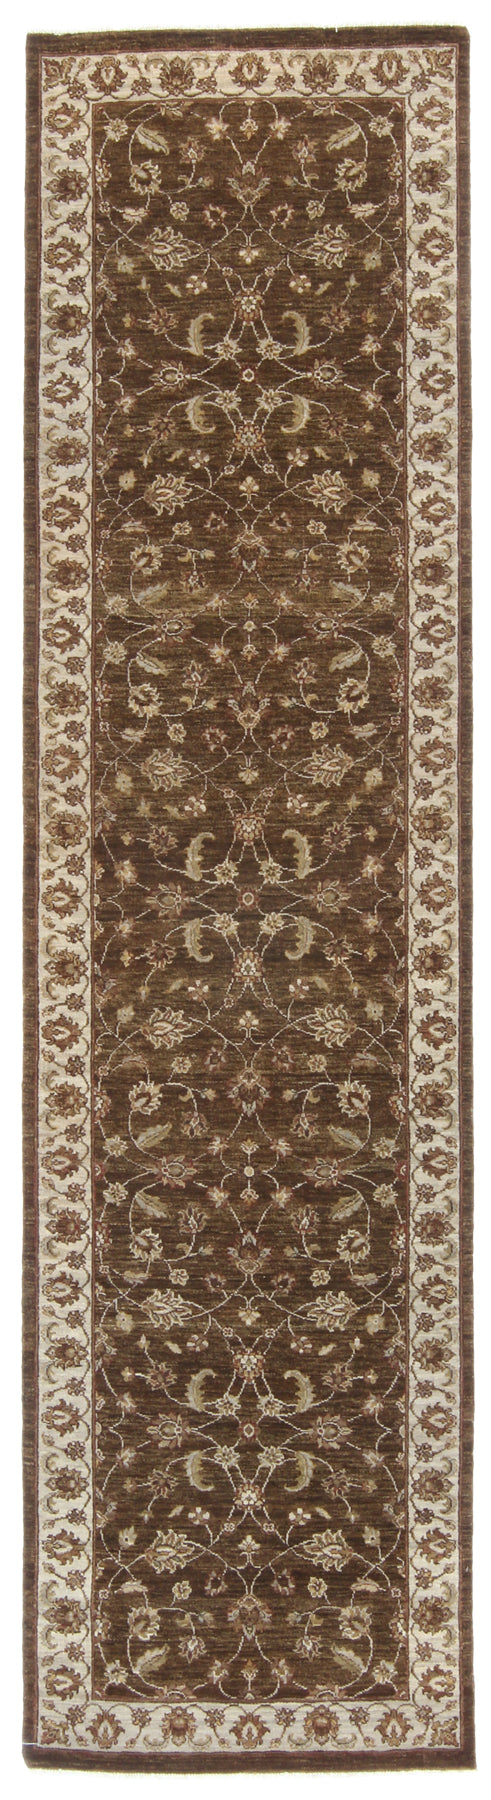 Jaipur Runner Brown-Turco Persian Rug Company Inc.